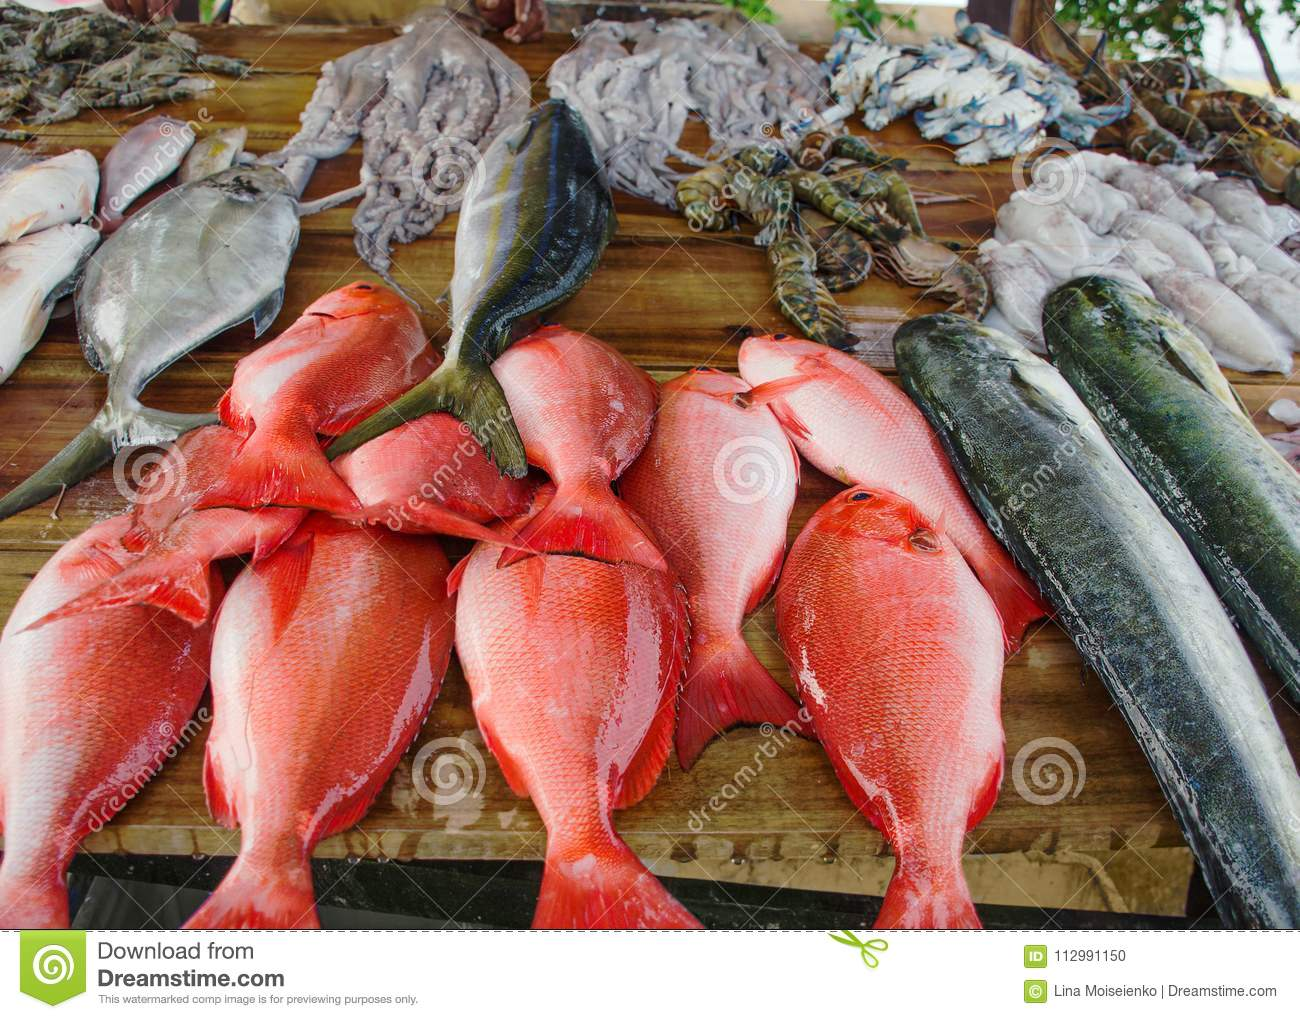 Various freshly caught fish on wooden counter.